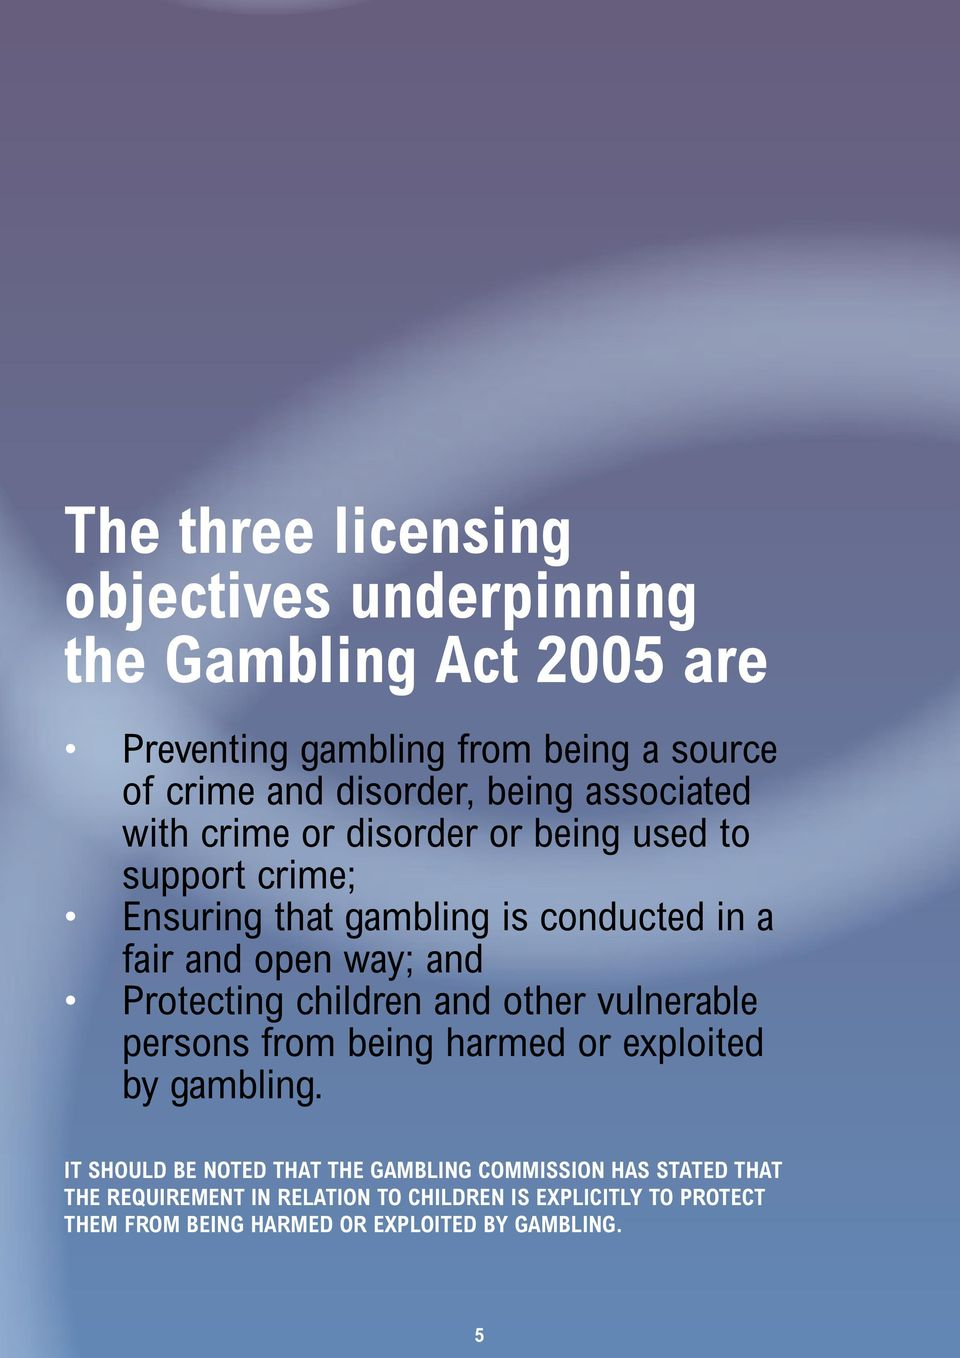 Protecting children and other vulnerable persons from being harmed or exploited by gambling.